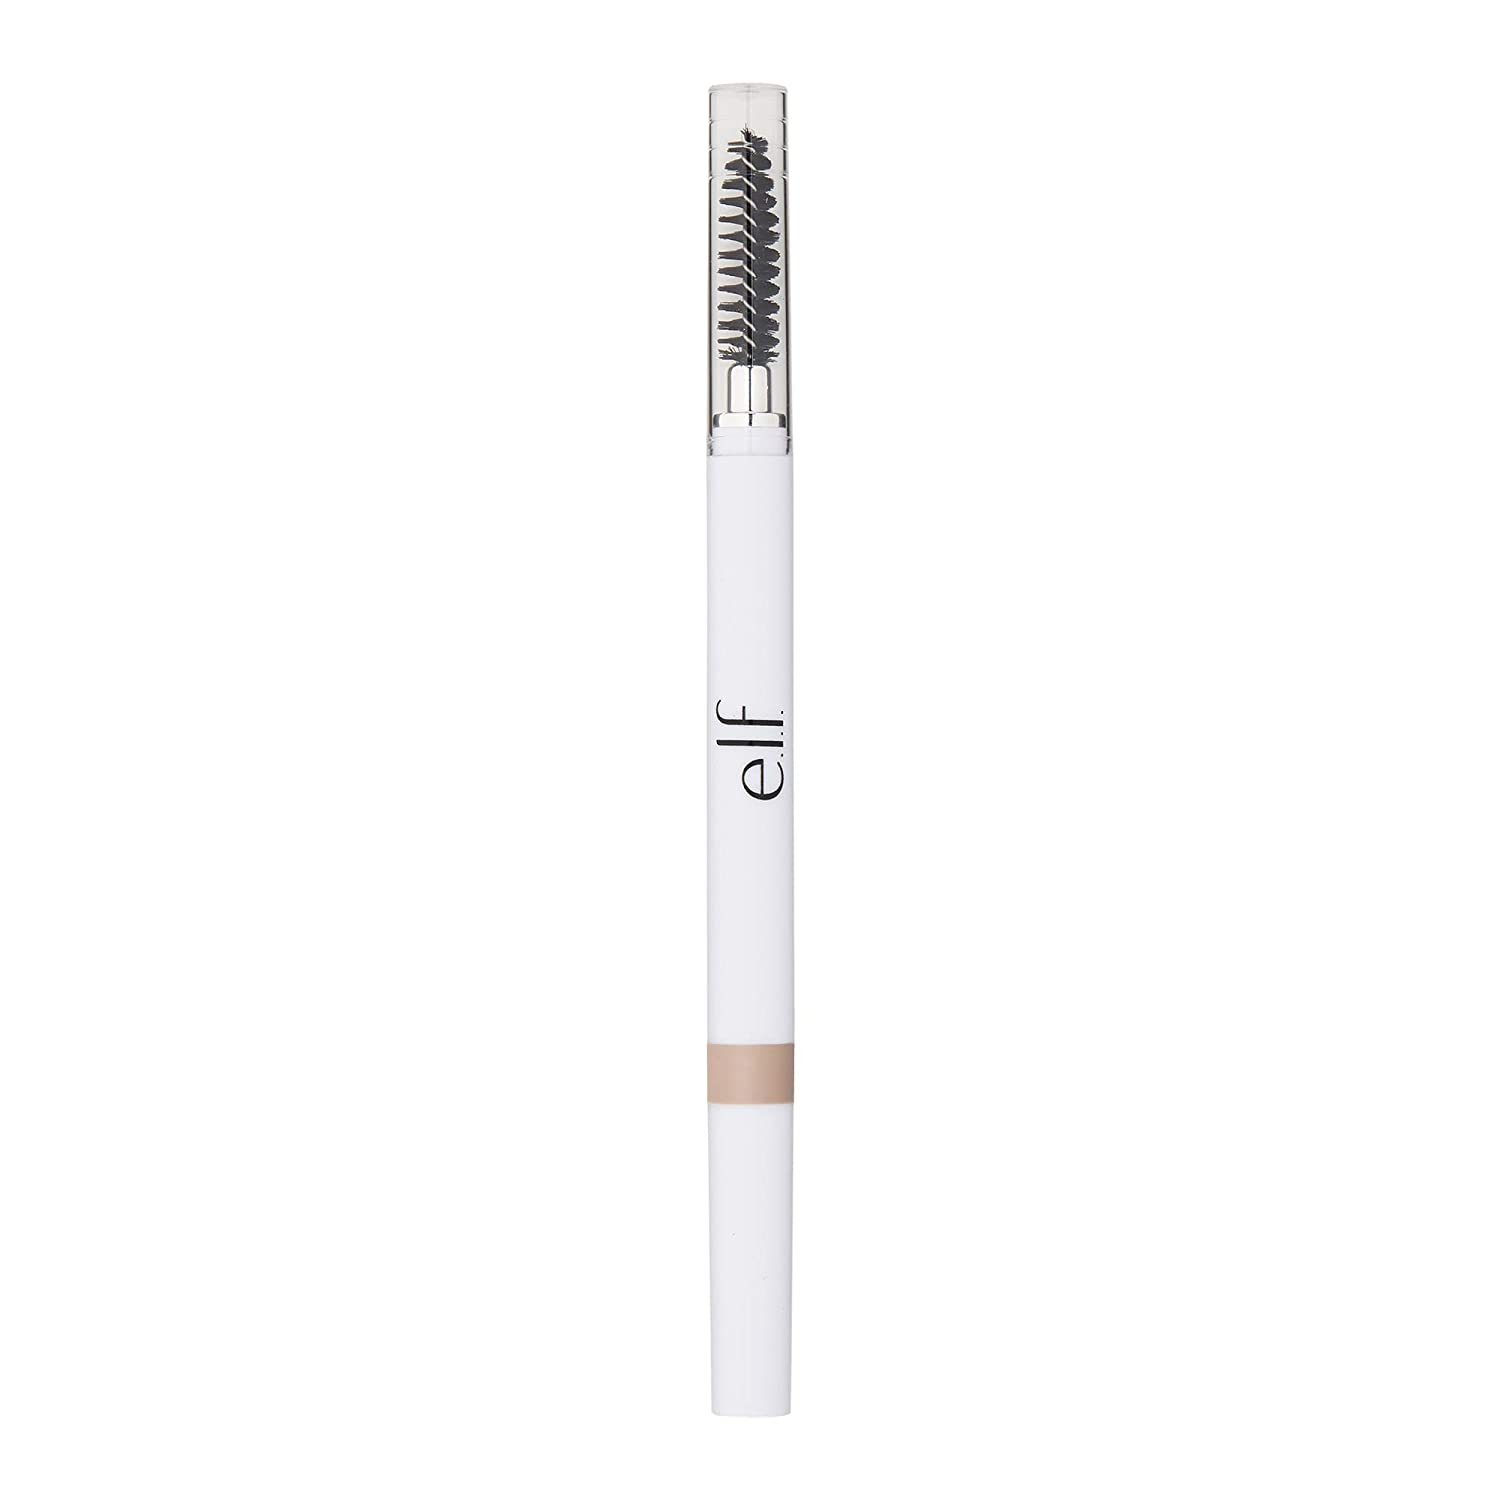 e.l.f. Instant Lift Brow Pencil Natural Formula, Blonde, 0.0063 Ounce